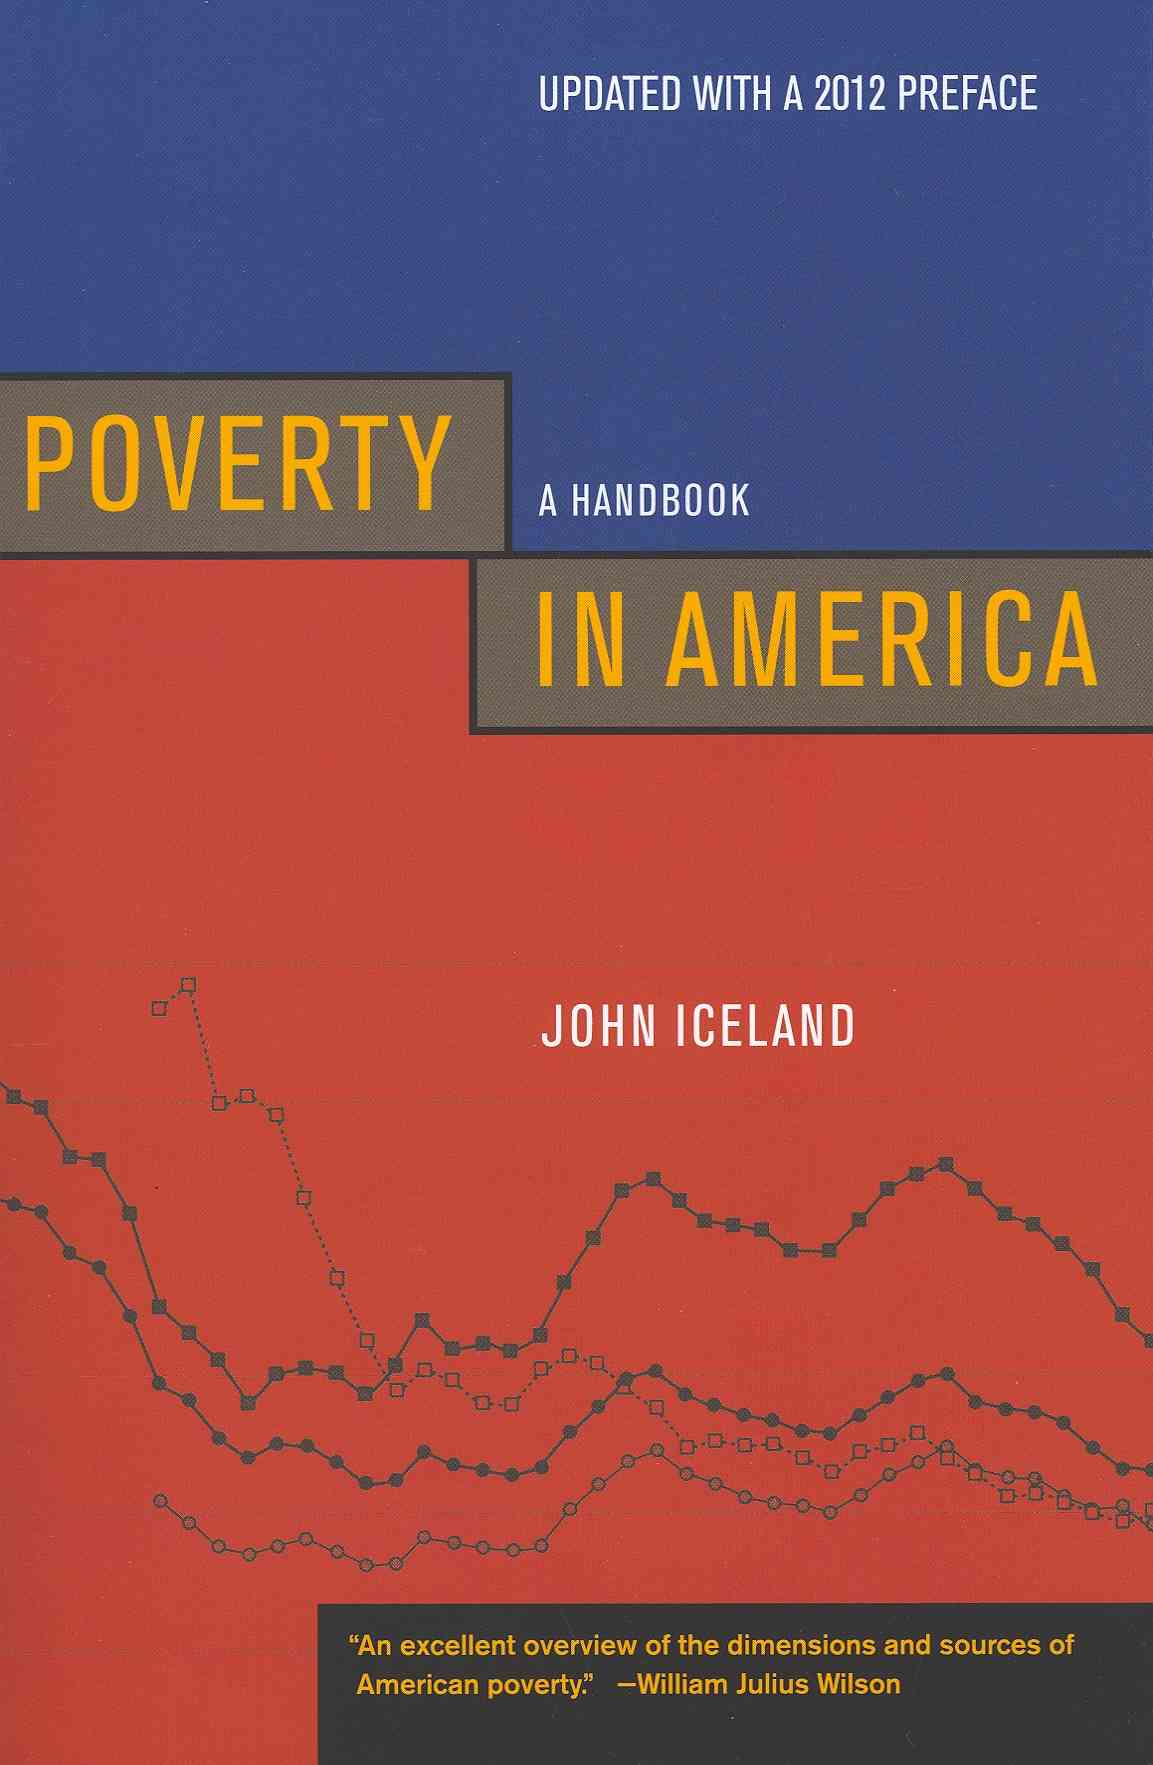 Poverty in America: A Handbook (Paperback)